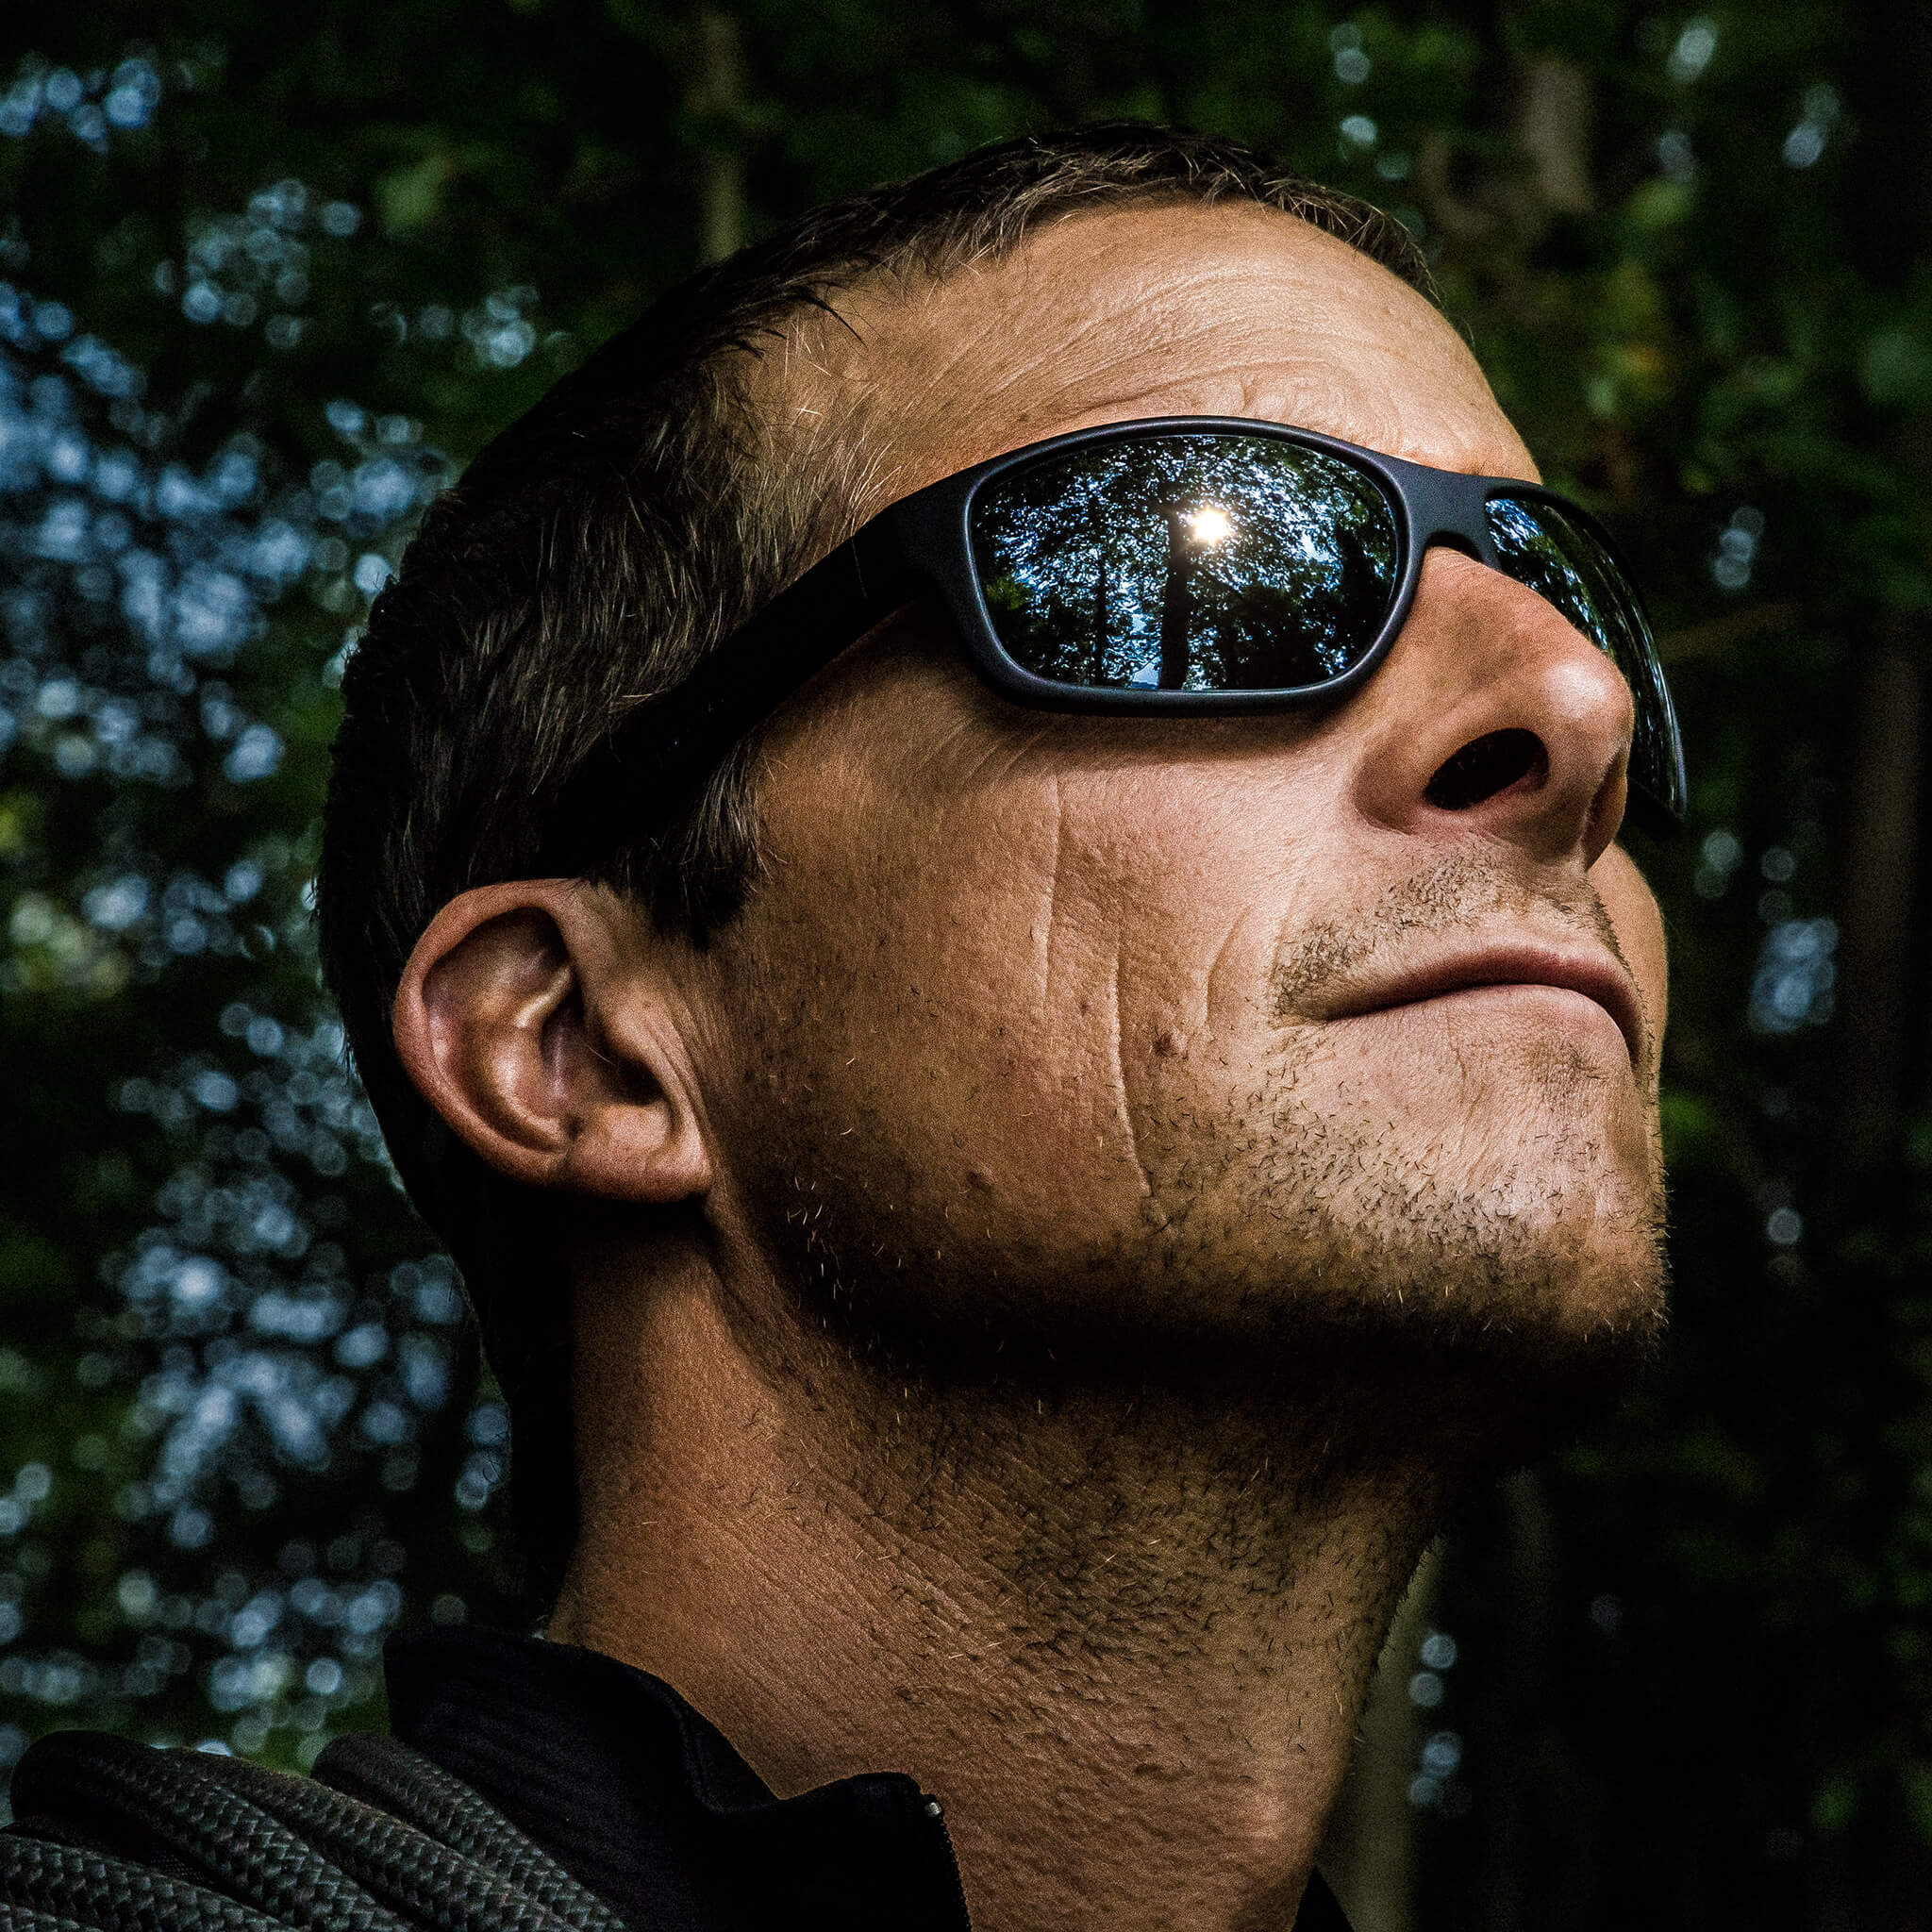 Bear Grylls wearing his Revo Maverick Sunglasses